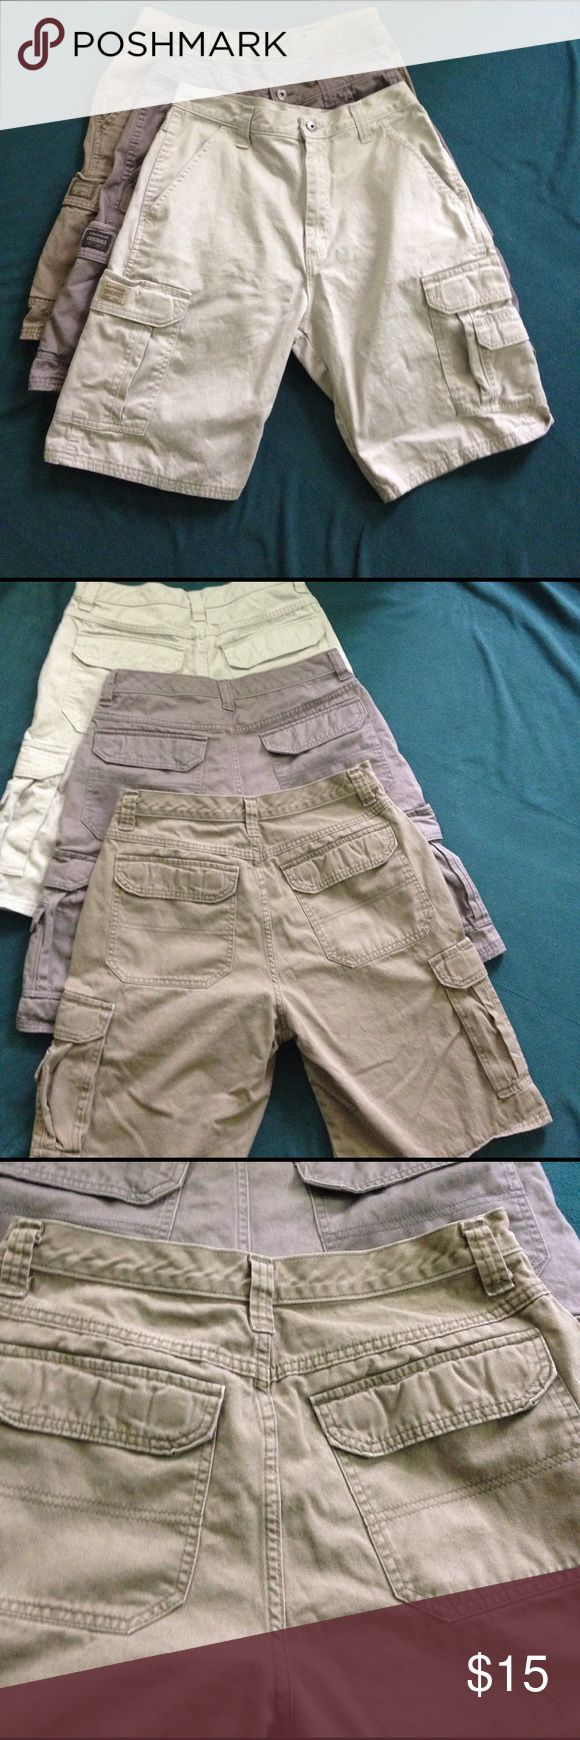 Bundle of 3 EUC mens cargo shorts EUC! Each pair only worn once or twice. No stains, holes or rips. Lots of pockets to securely hold all of your stuff! Smoke-free home. 🌺 I offer a 15% discount when you bundle 2 or more listings!🌺 Wrangler Shorts Cargo